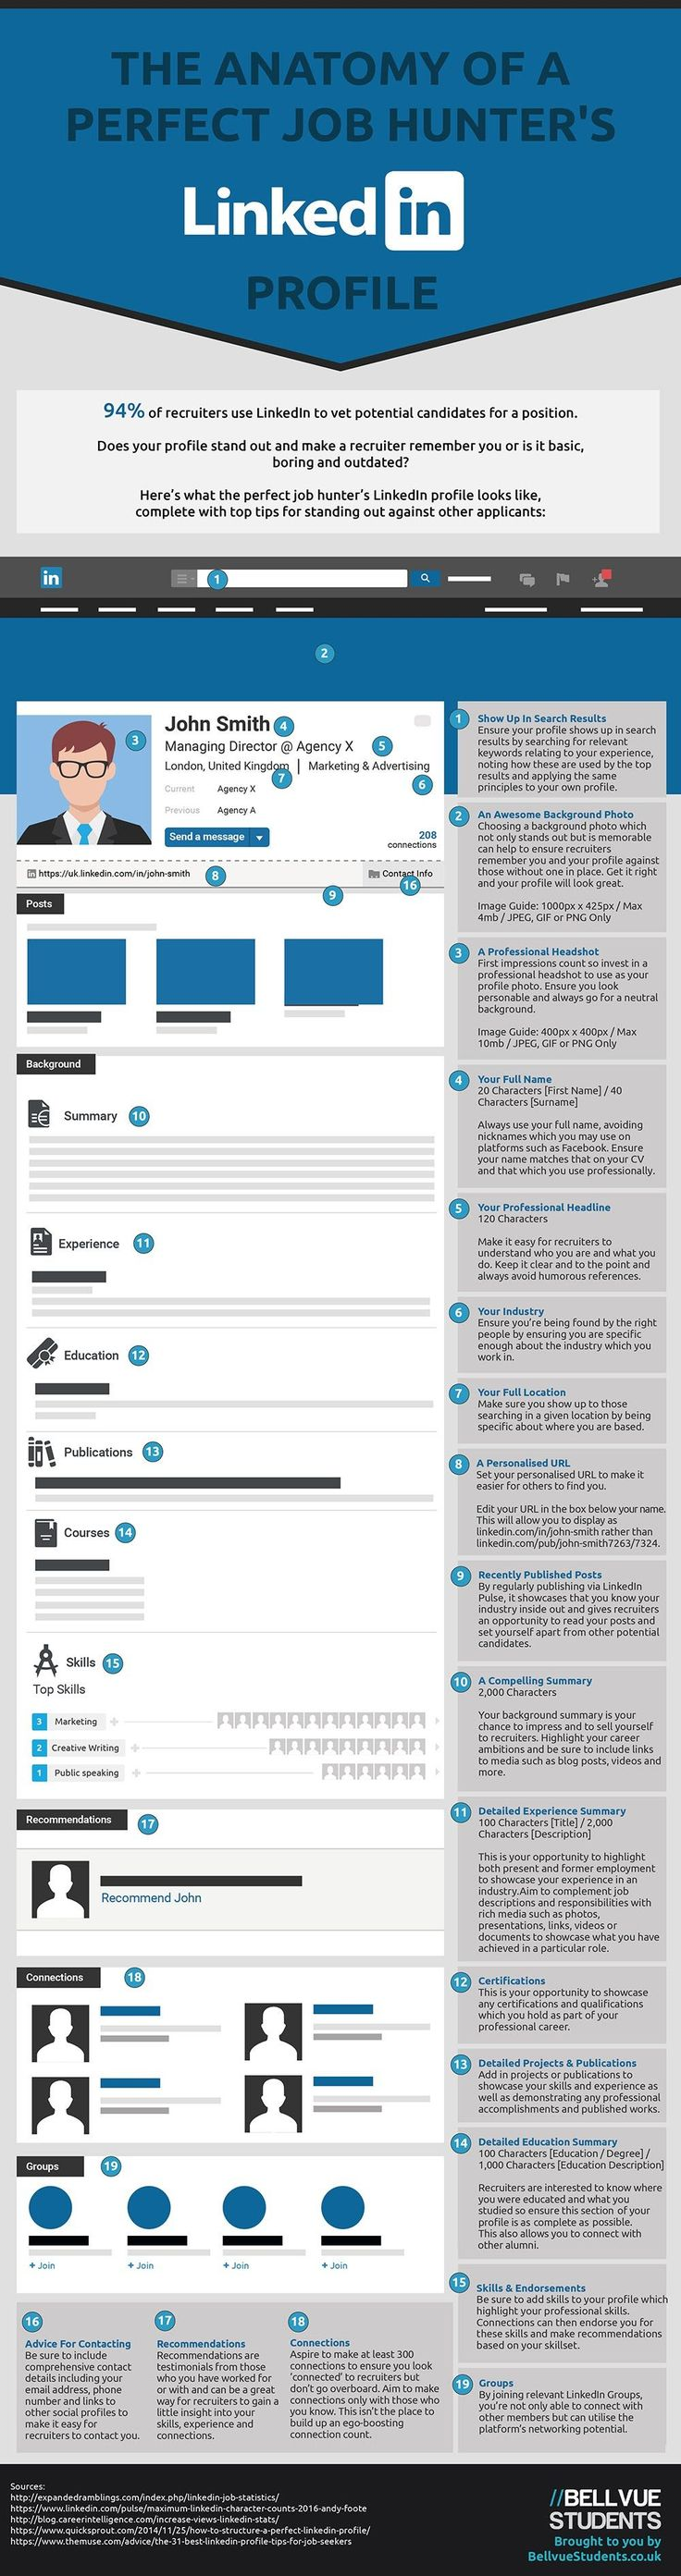 The Anatomy of a Perfect Job Hunter's Linkedin Profile - #Infographic #Jobinterviews